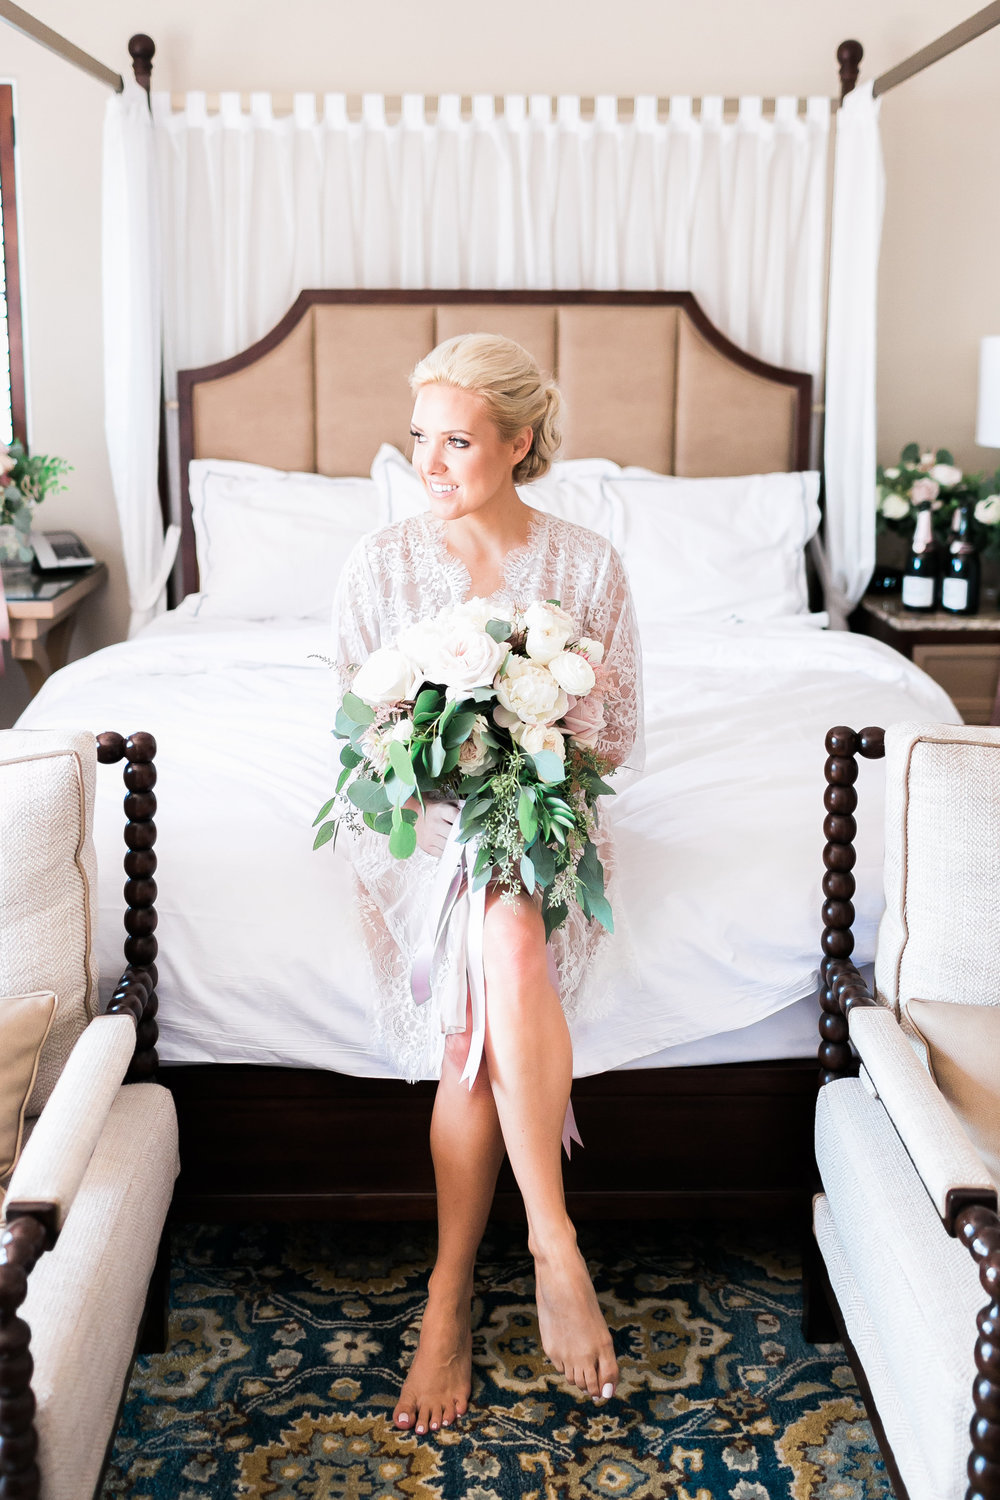 Blonde bride in robe with lush bouquet.   CREDITS:  Destination Wedding Planner  ANDREA EPPOLITO EVENTS  · Images by  J.ANNE P  HOTOGRAPHY  · Video  HOO FILMS  · Venue Ritz Carlton Bacara Santa Barbara ·Gown  MONIQUE LHULLIER ·Bridesmaids Dresses  SHOW ME YOUR MUMU ·Stationery  SHE PAPERIE ·Bride's Shoes  BADGLEY MISCHKA ·Hair and Makeup  TEAM HAIR AND MAKEUP · Floral  BLUE MAGNOLIA ·Linen  LA TAVOLA ·Decor Rentals  TENT MERCHANT ·Calligraphy  EBB ·Lighting  FIVE STAR AV ·Ice Cream Station  MCCONNELL'S ICE CREAM